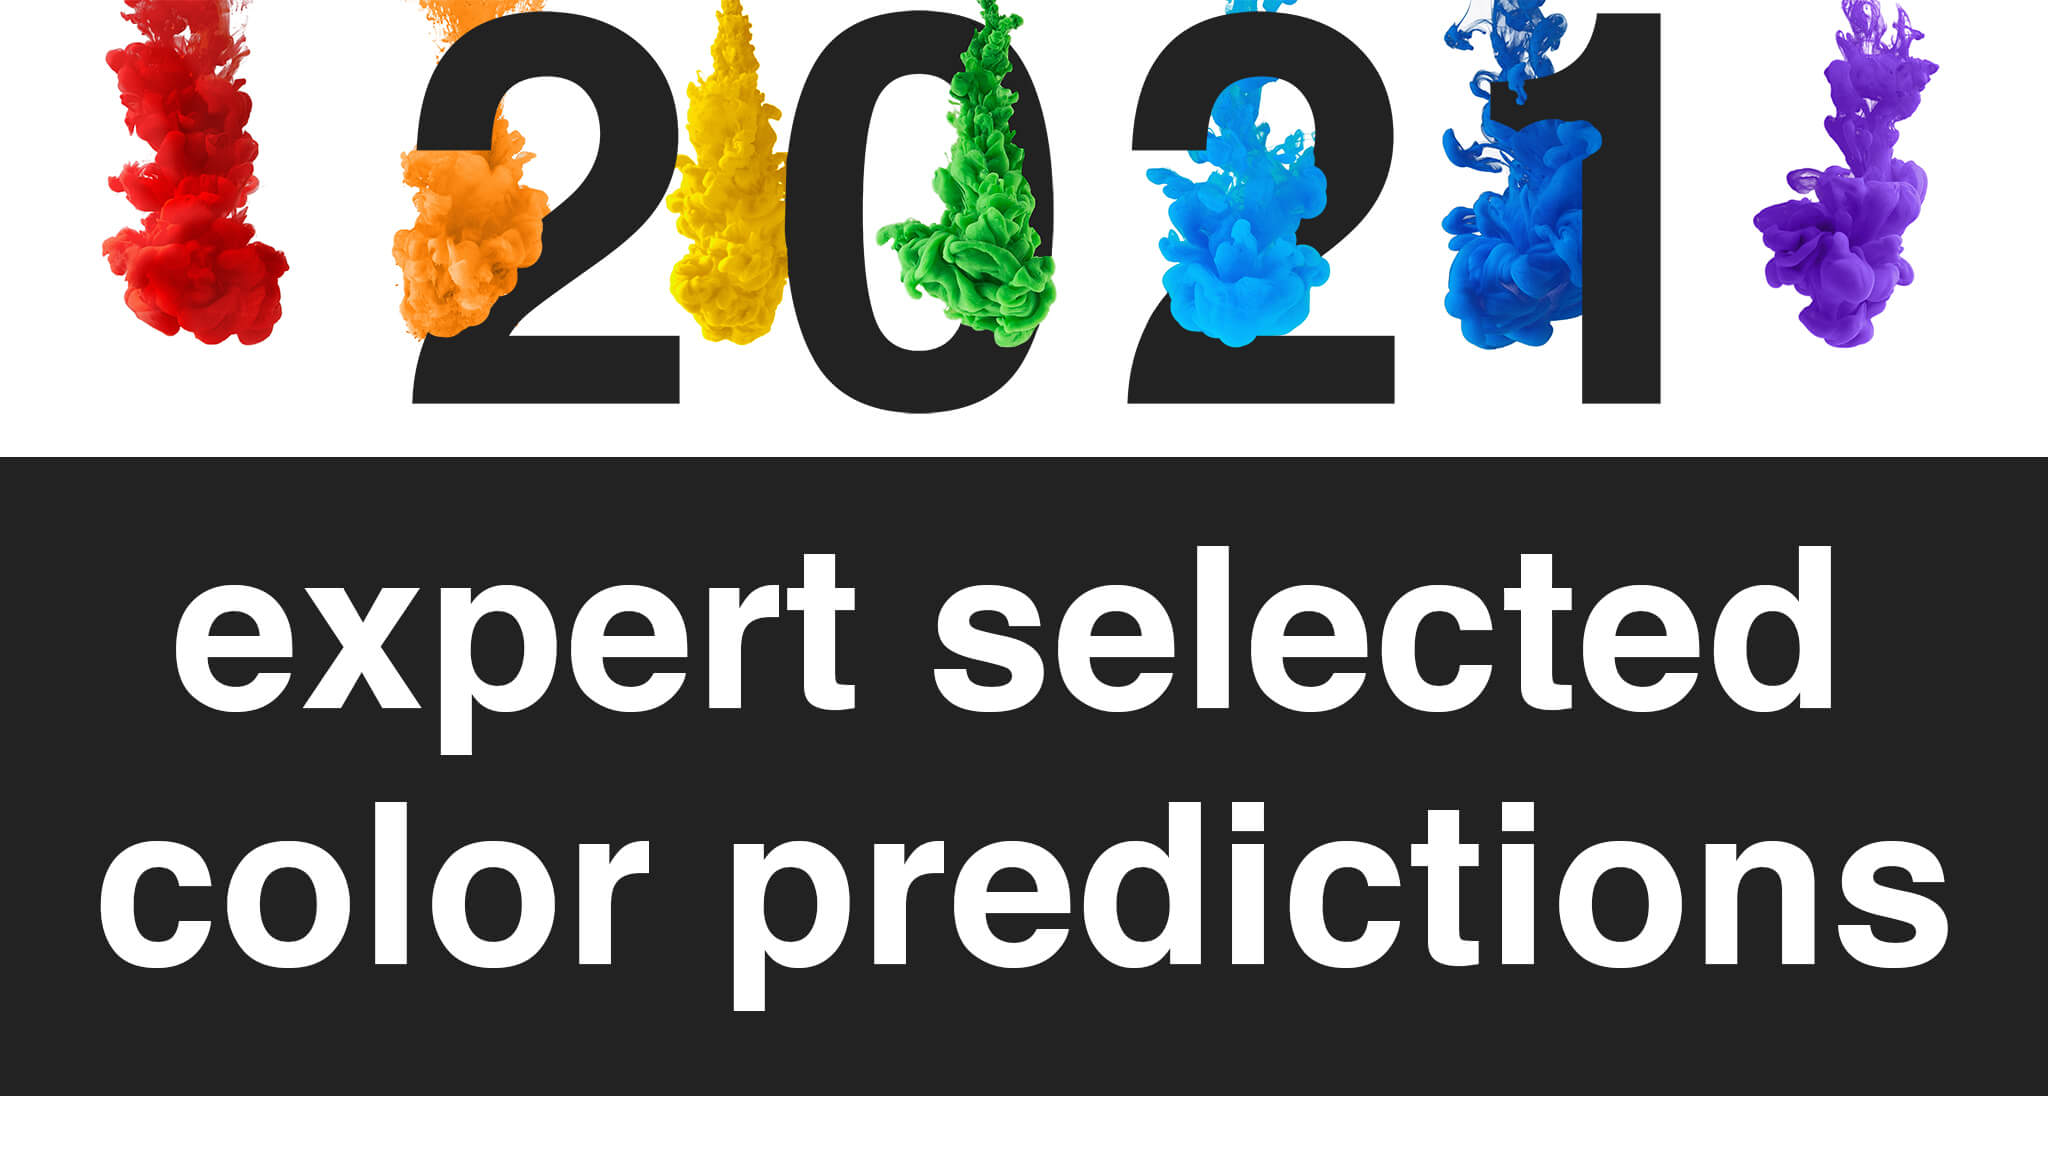 Color Predictions for 2021, According to Experts